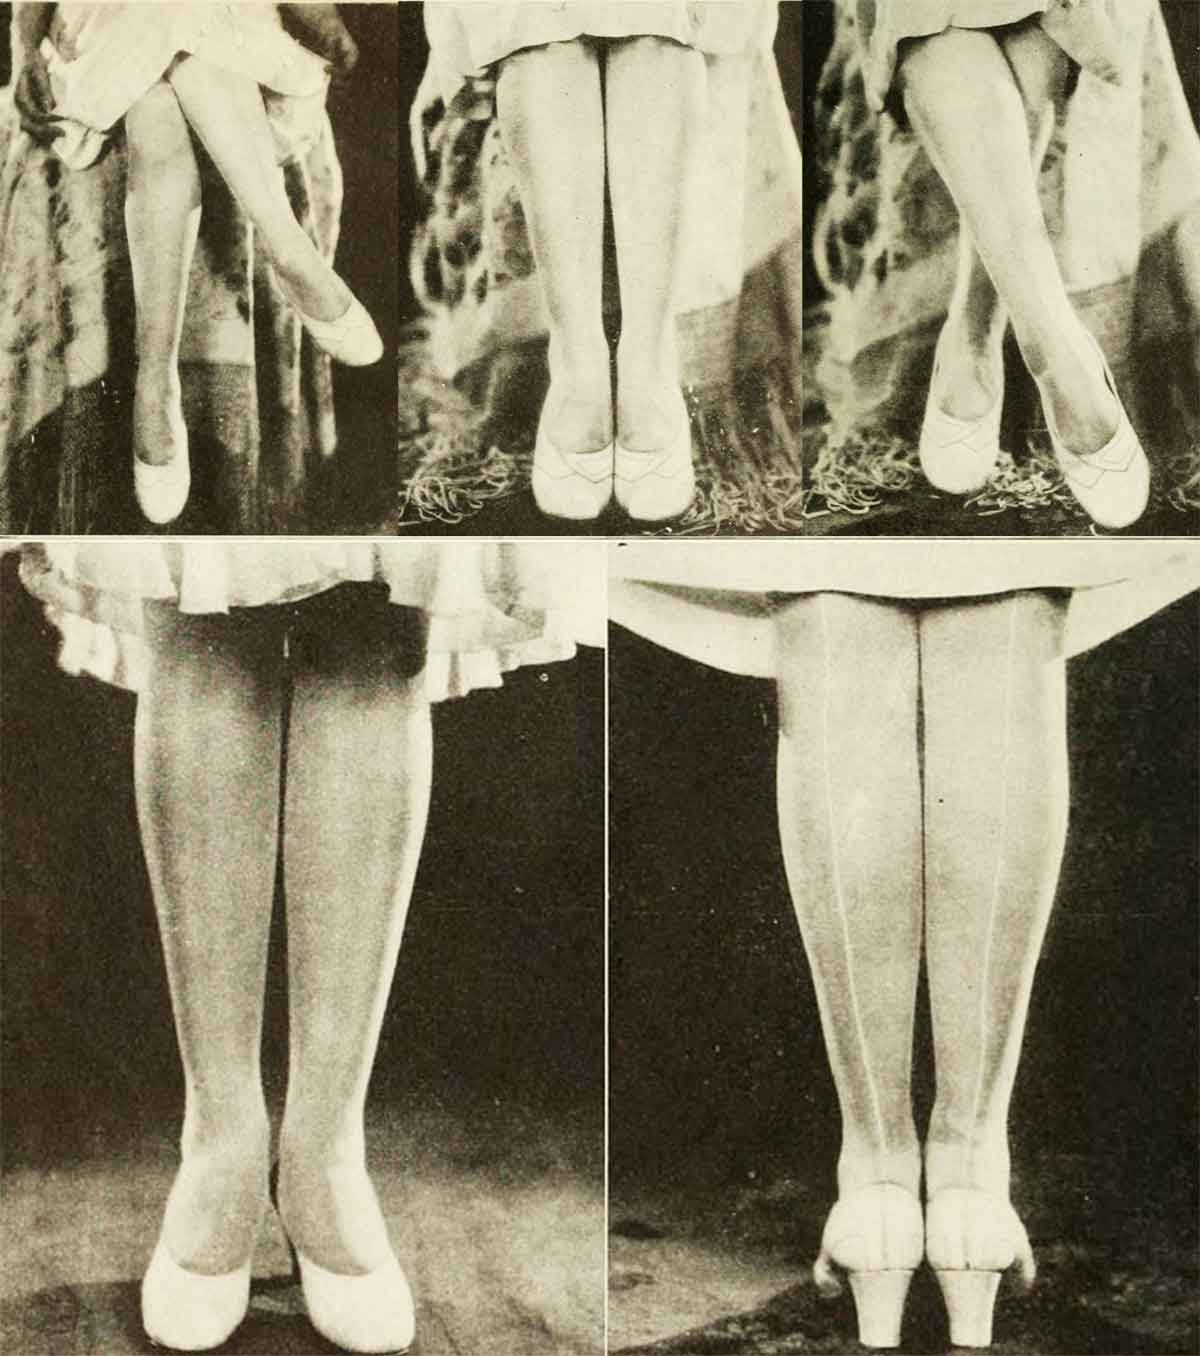 1920s-Fashion-Flappers-leg-posture